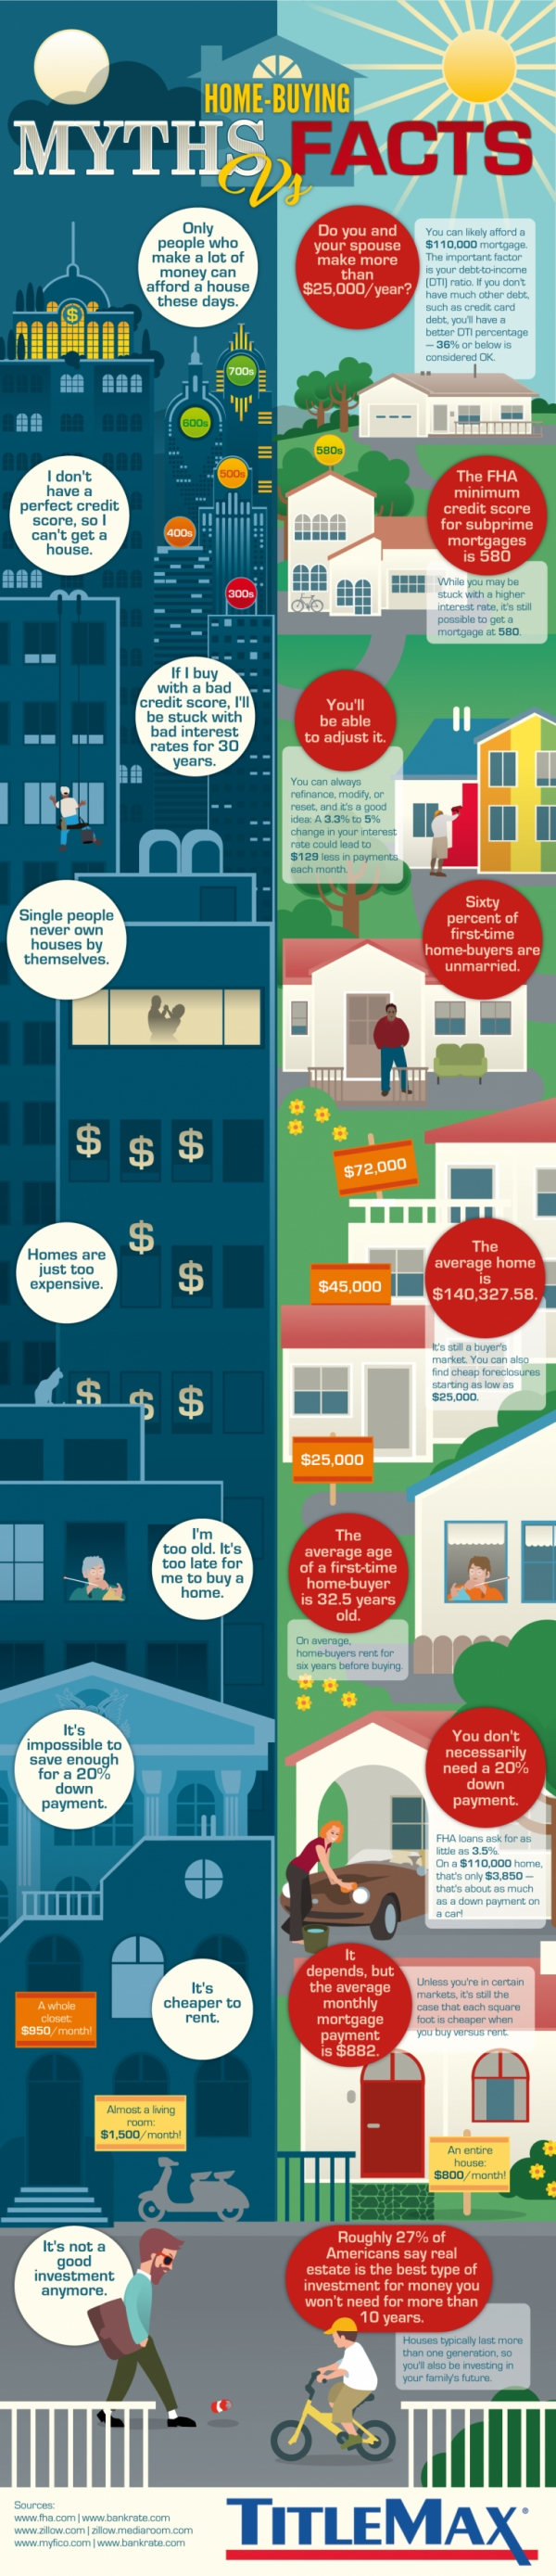 Home Buying Myths Vs Facts